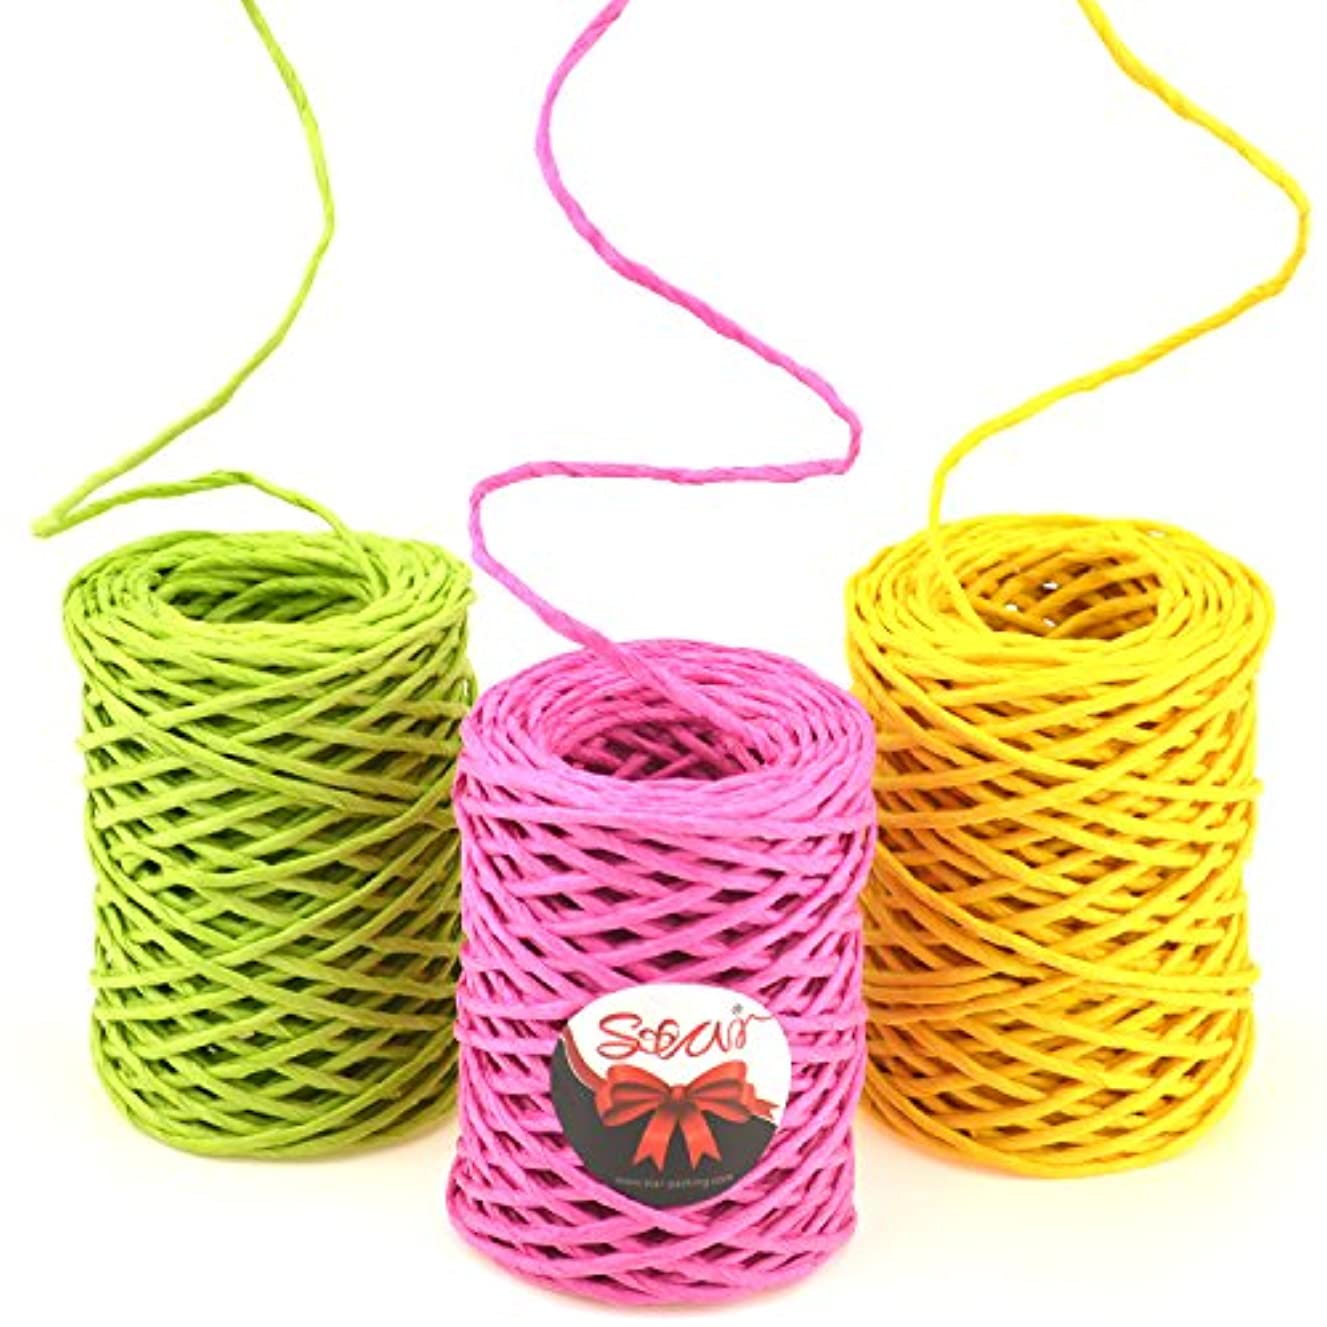 Star Quality 2mm Thick Paper Twine 3 Rolls of 30 Yards | 3 Colors Paper String for Binding | Kraft Paper Rope for Gift Wrap and DIY Projects (Hot Pink/Daffodil Yellow/Greenery, 30Yards x 3 Rolls)